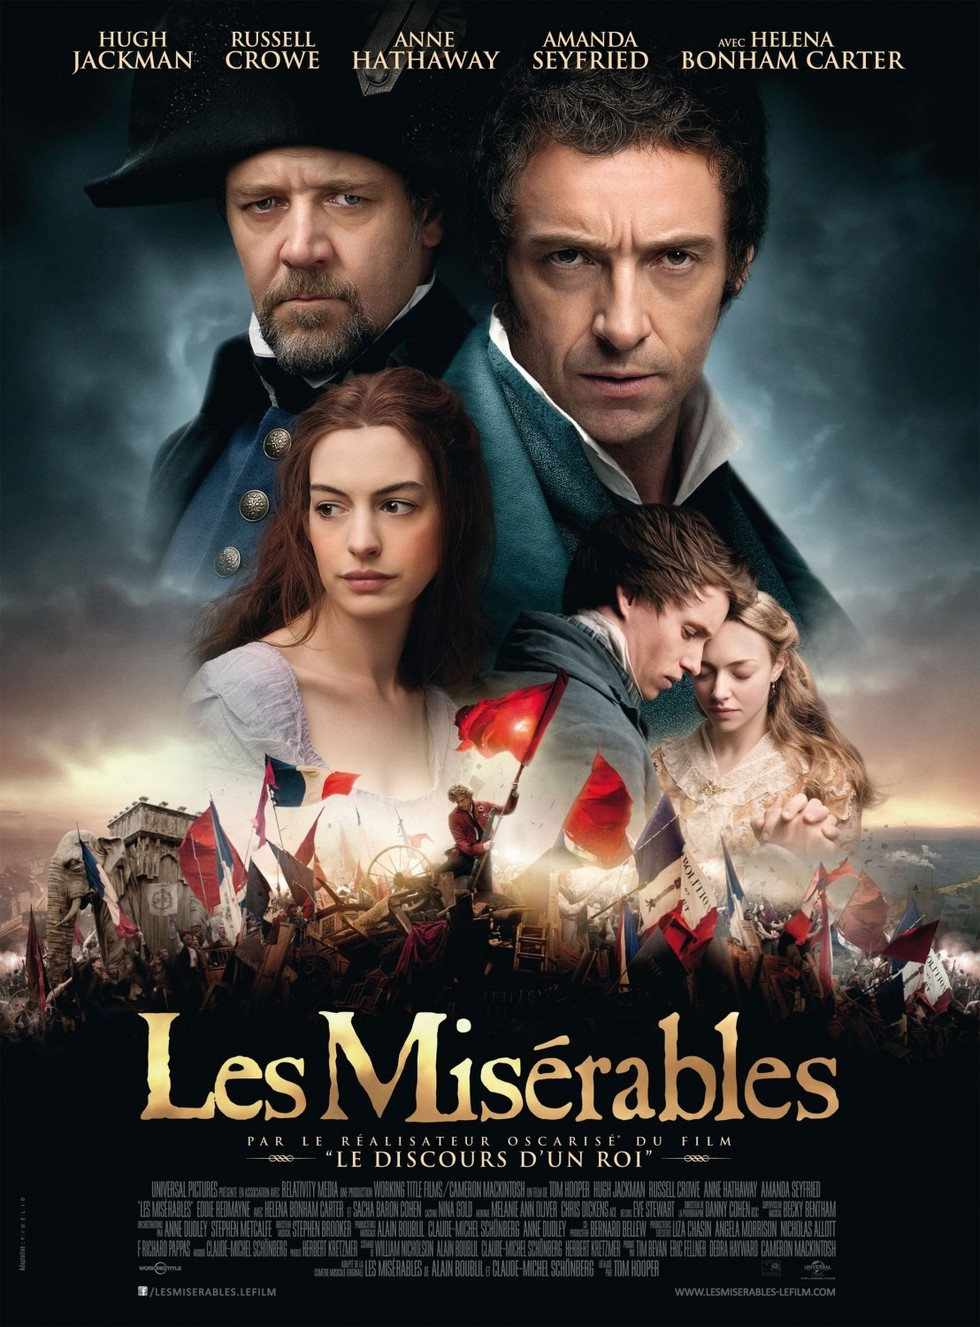 Les Miserables - Movie Poster #3 (Large)